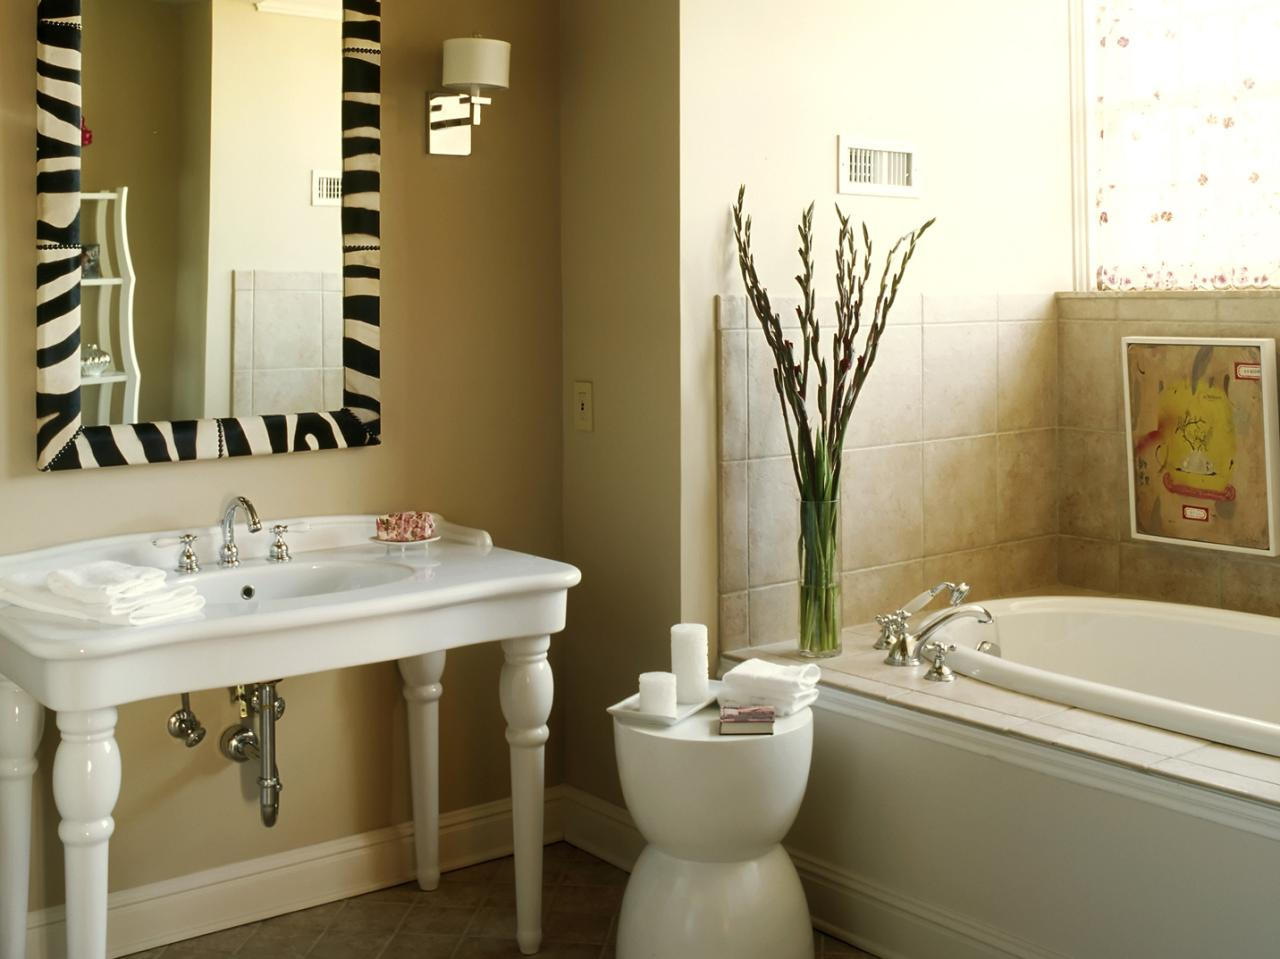 Traditional Bathroom Design Ideas Impressive Traditional Bathroom Designs Pictures & Ideas From Hgtv  Hgtv Design Ideas